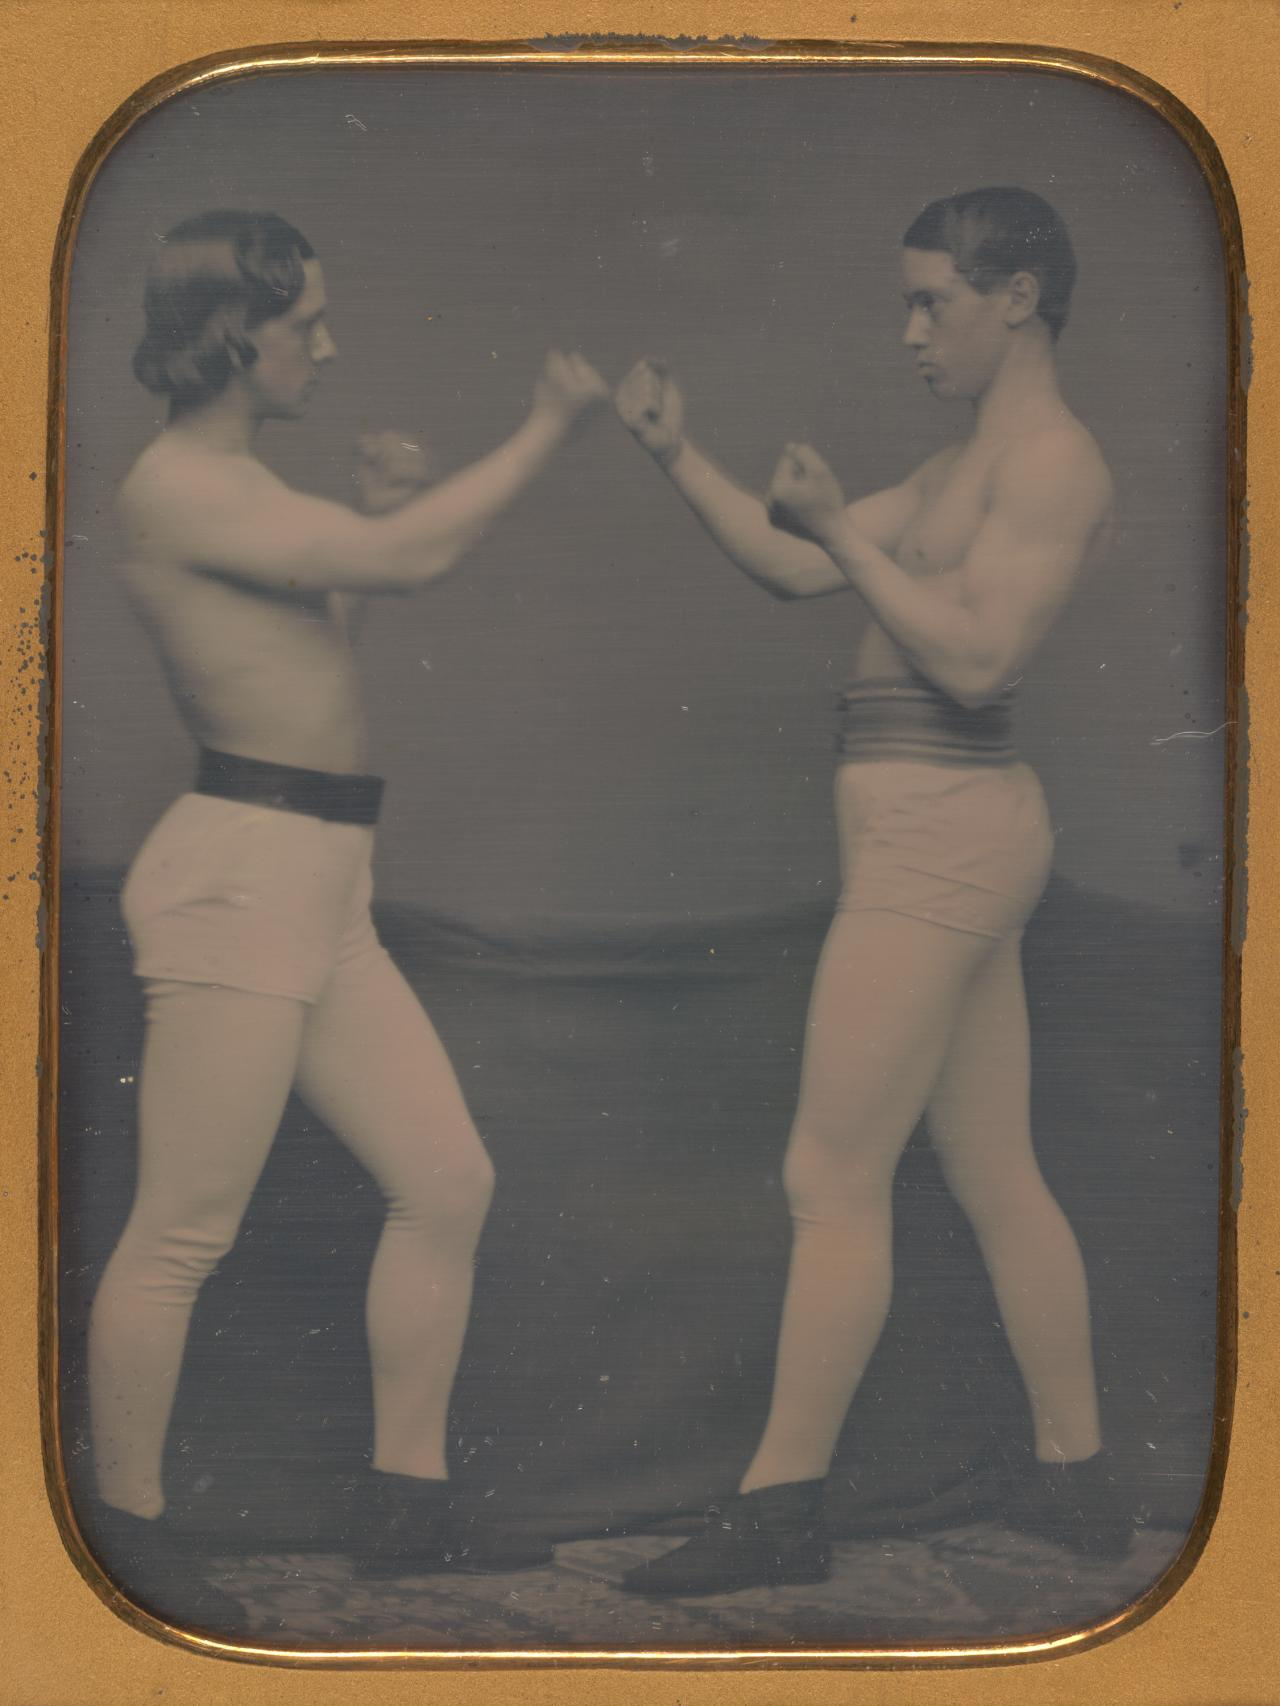 UNKNOWN No title (Two boxers) (1850s)